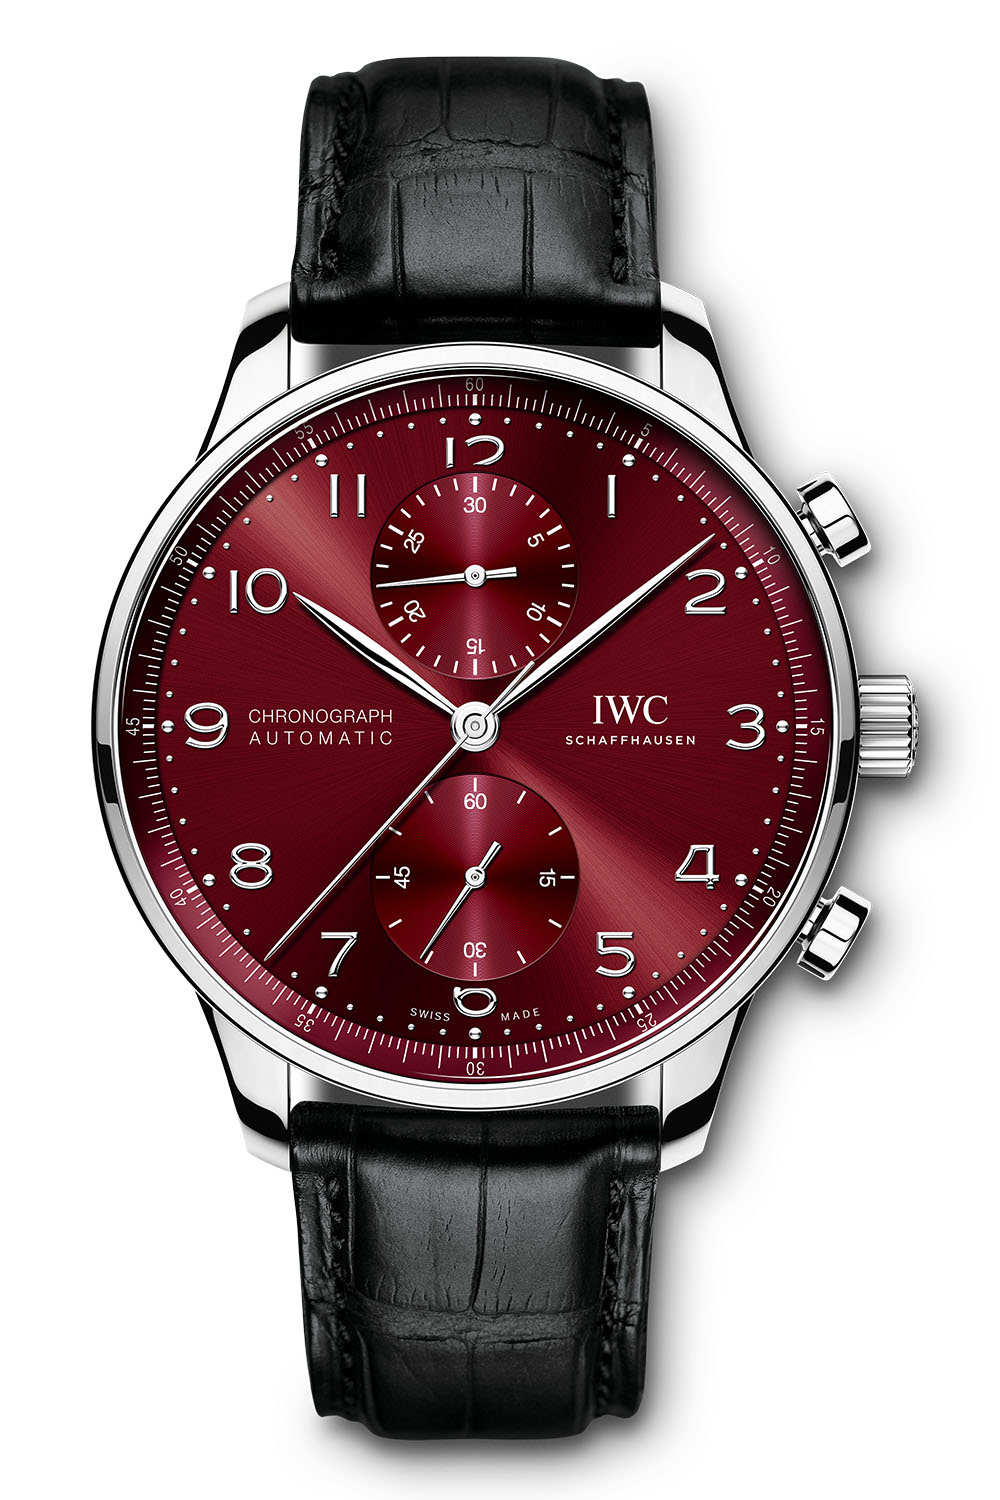 IWC Portugieser Chronograph automatic burgundy dial iw371616 - 1